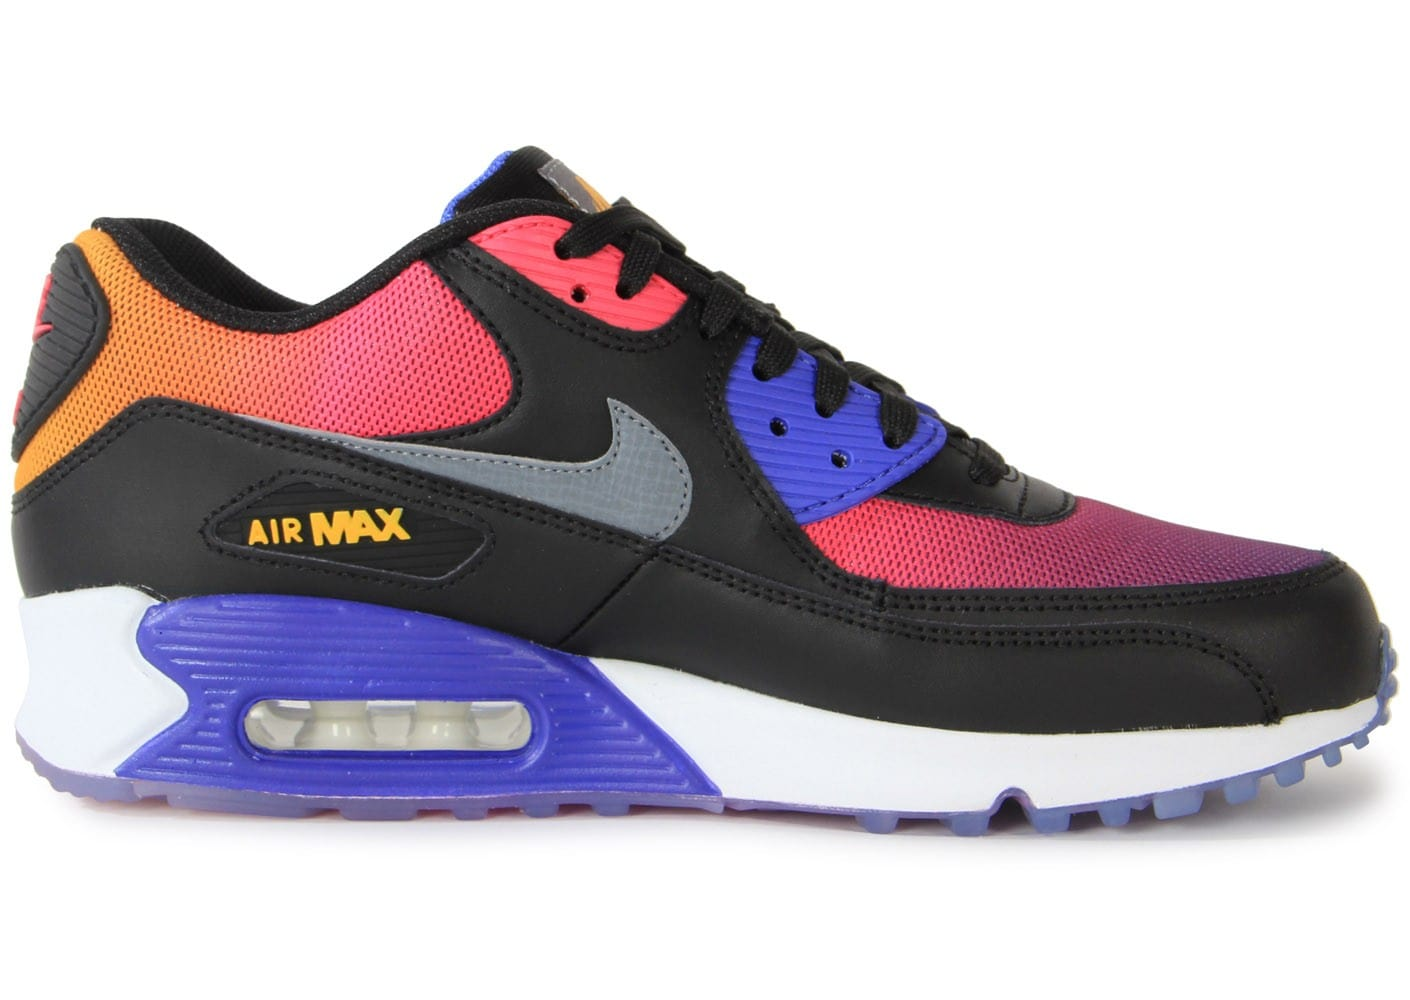 ... Chaussures Nike Air Max 90 Sd Sunset vue dessous ...